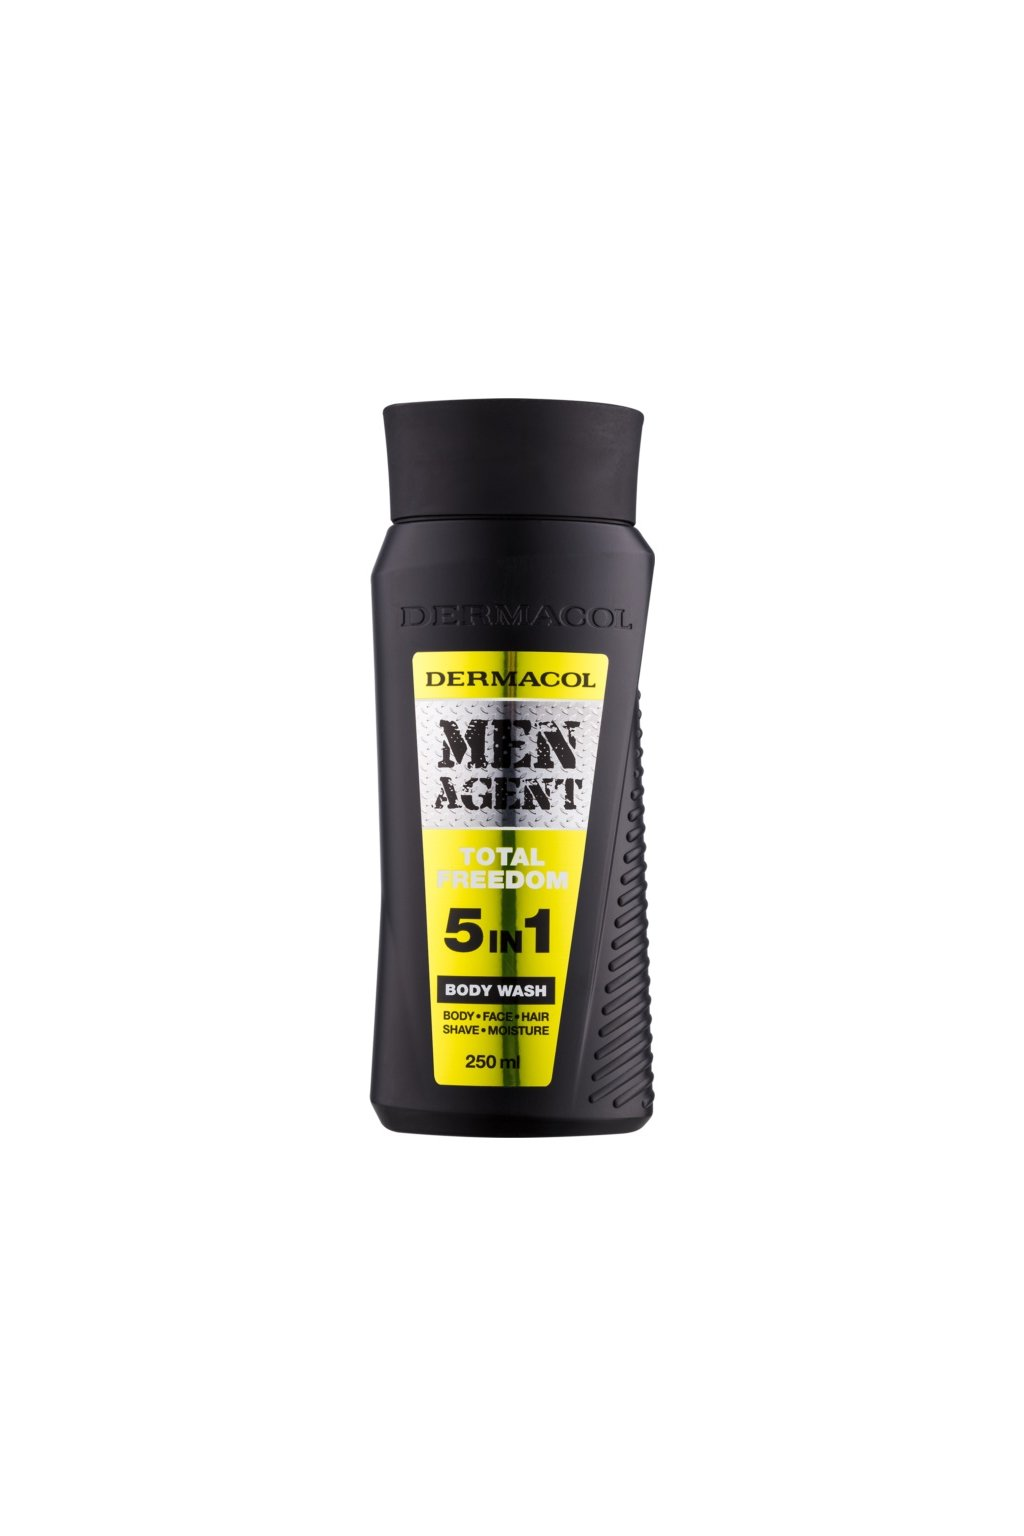 dermacol men agent total freedom sprchovy gel 5 v 1 12